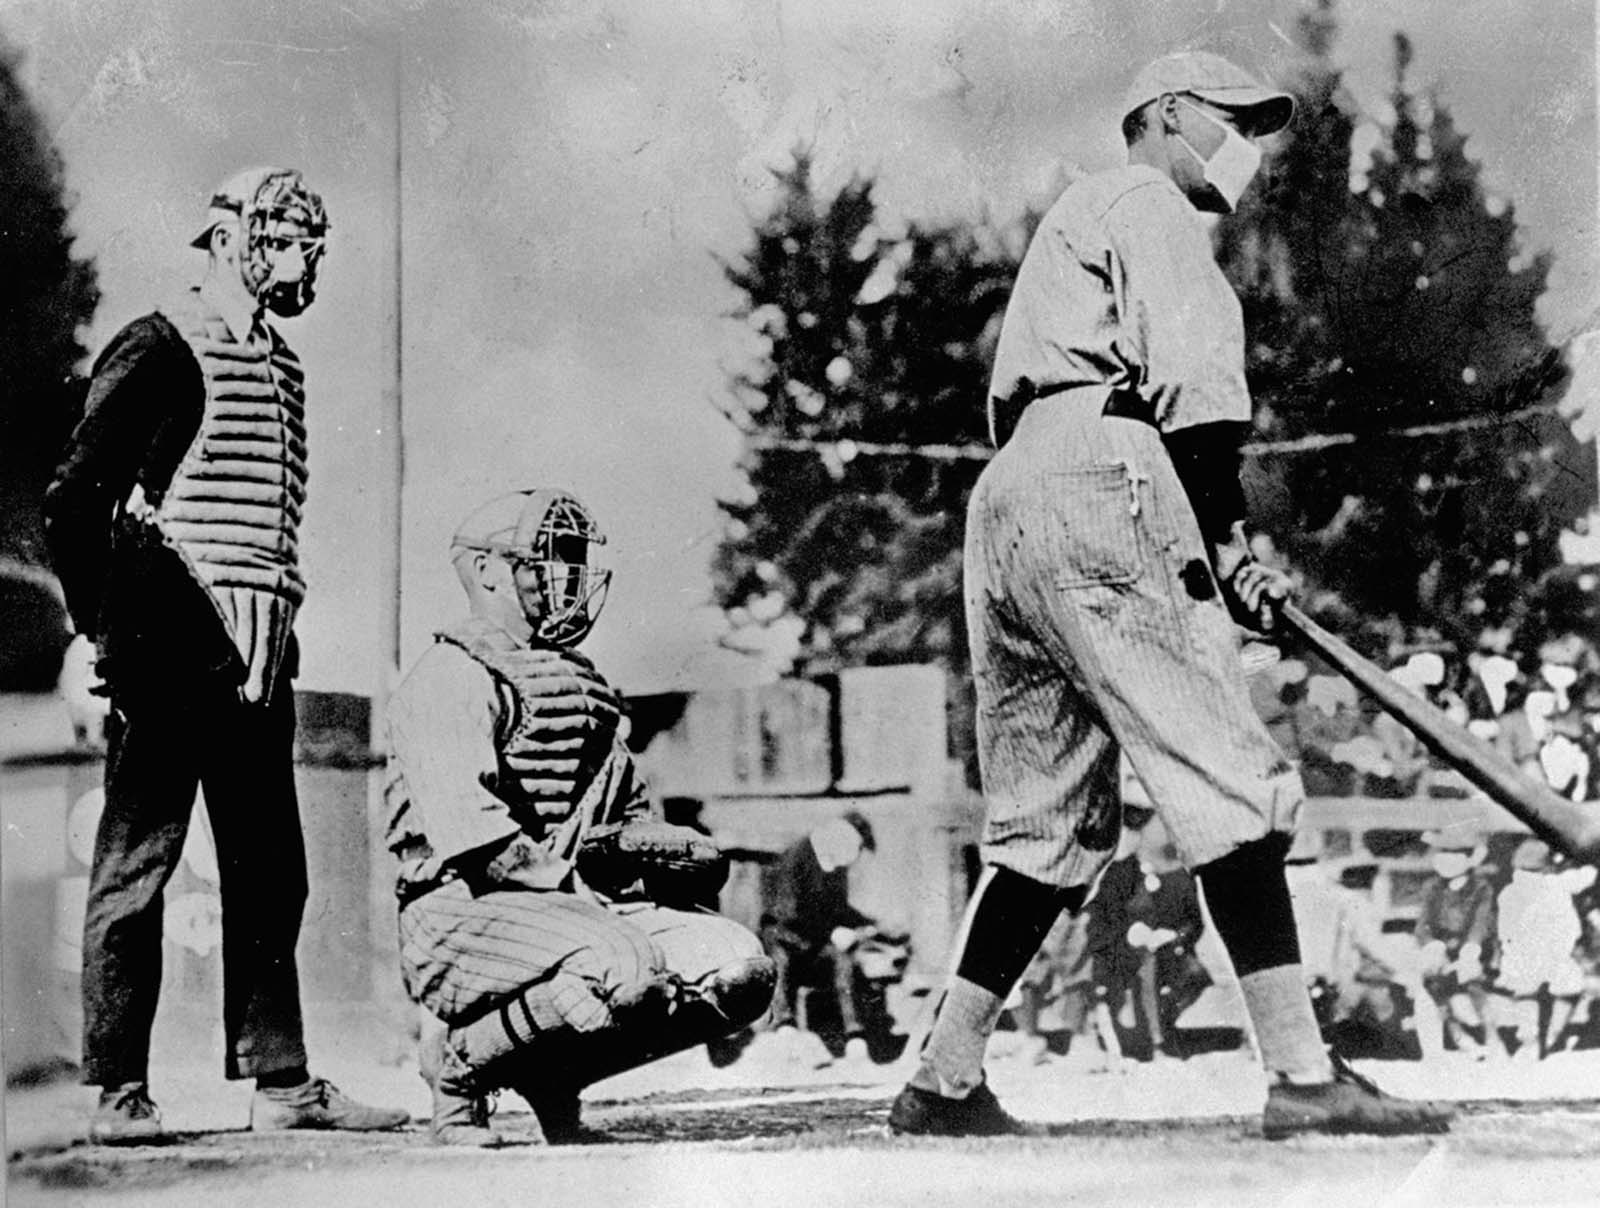 Baseball players wear masks to prevent the spread of infection during the influenza epidemic of 1918.